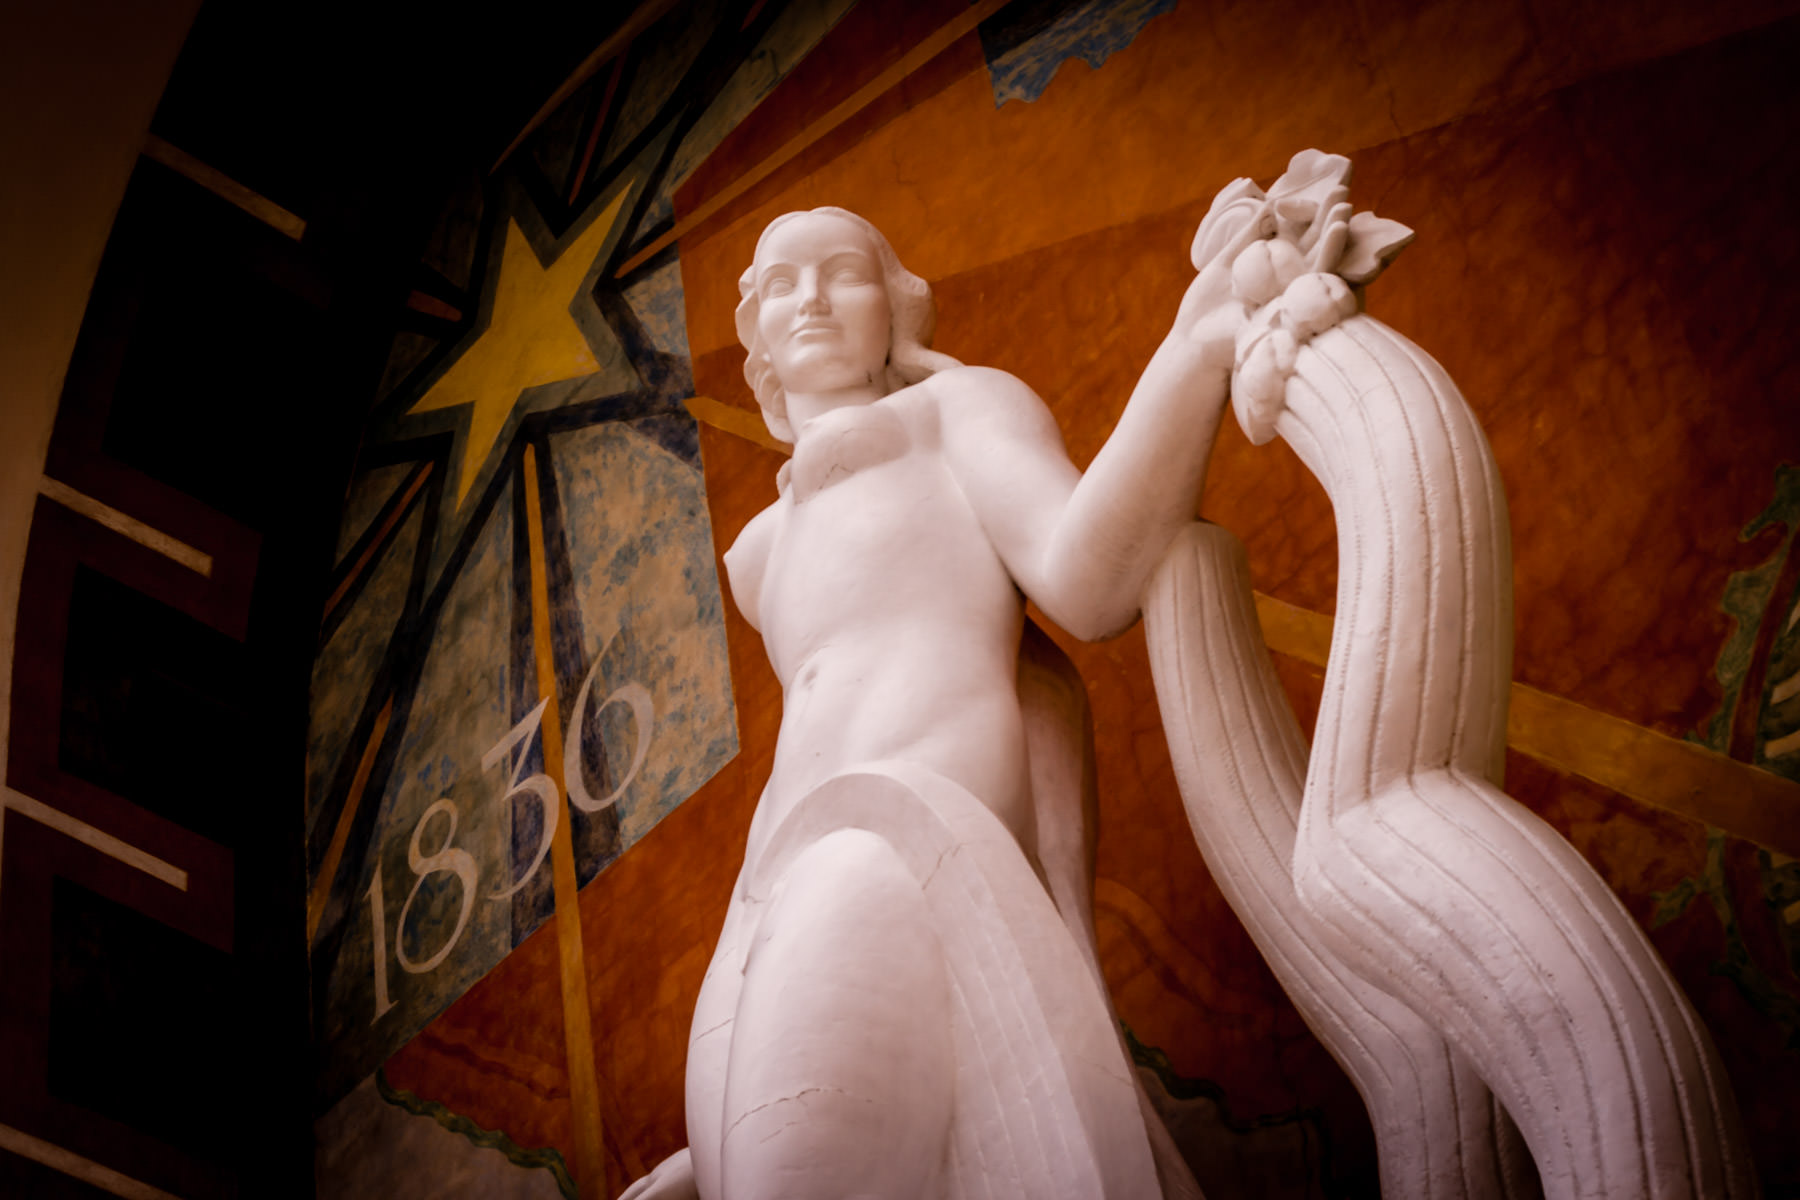 An Art Deco statue in Dallas' Fair Park.